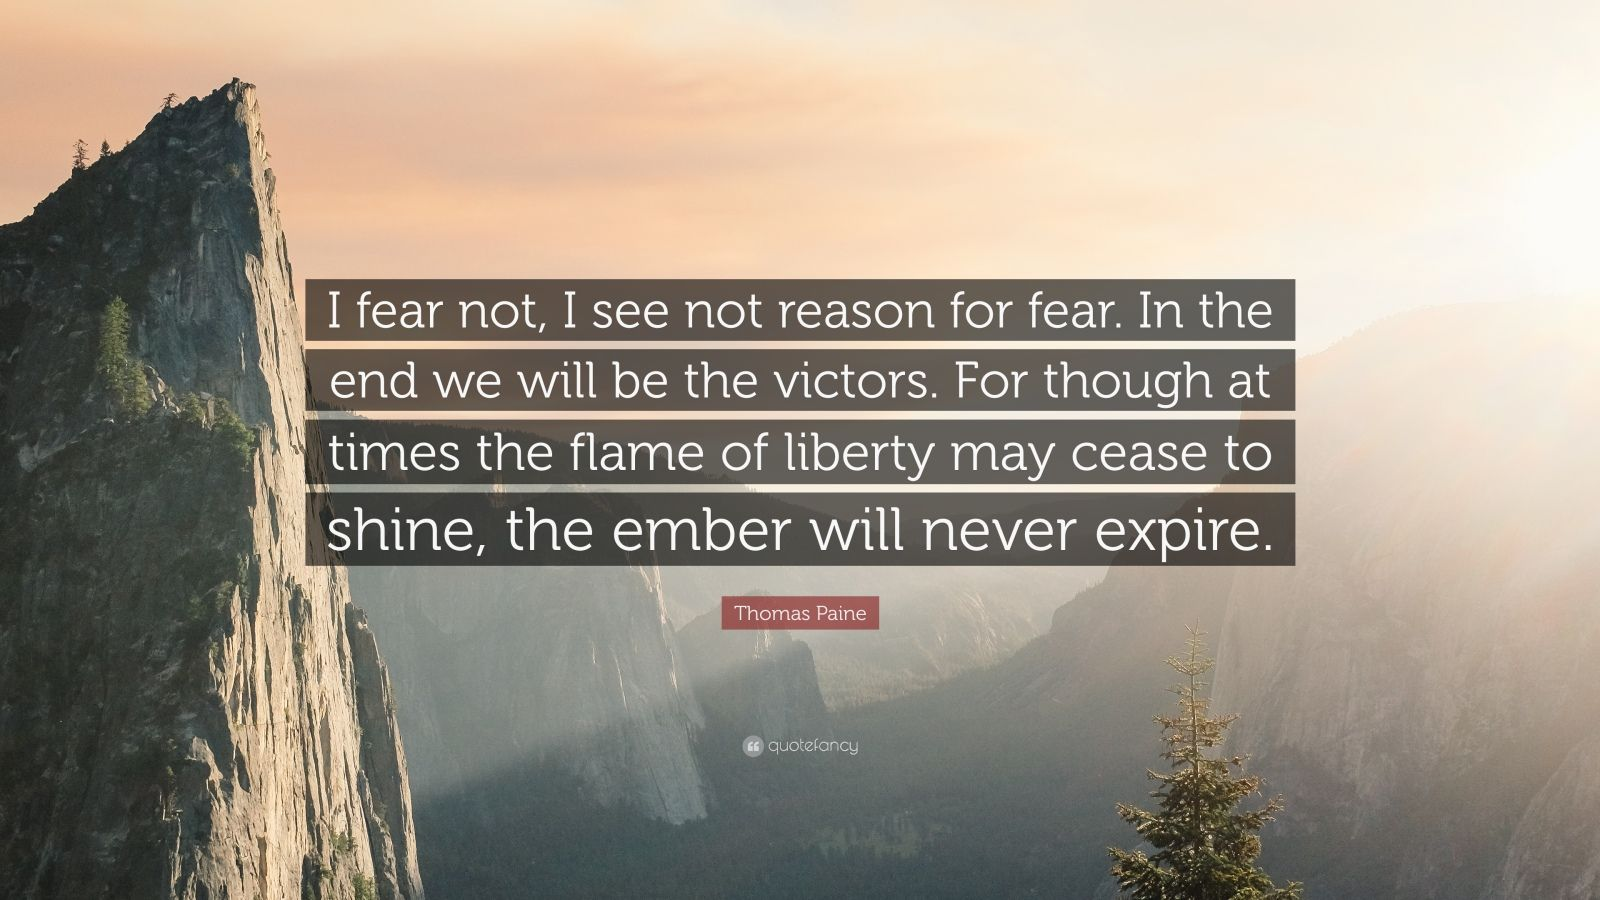 """Thomas Paine Quote: """"I fear not, I see not reason for fear. In the end we will be the victors. For though at times the flame of liberty may cease to shine, the ember will never expire."""""""